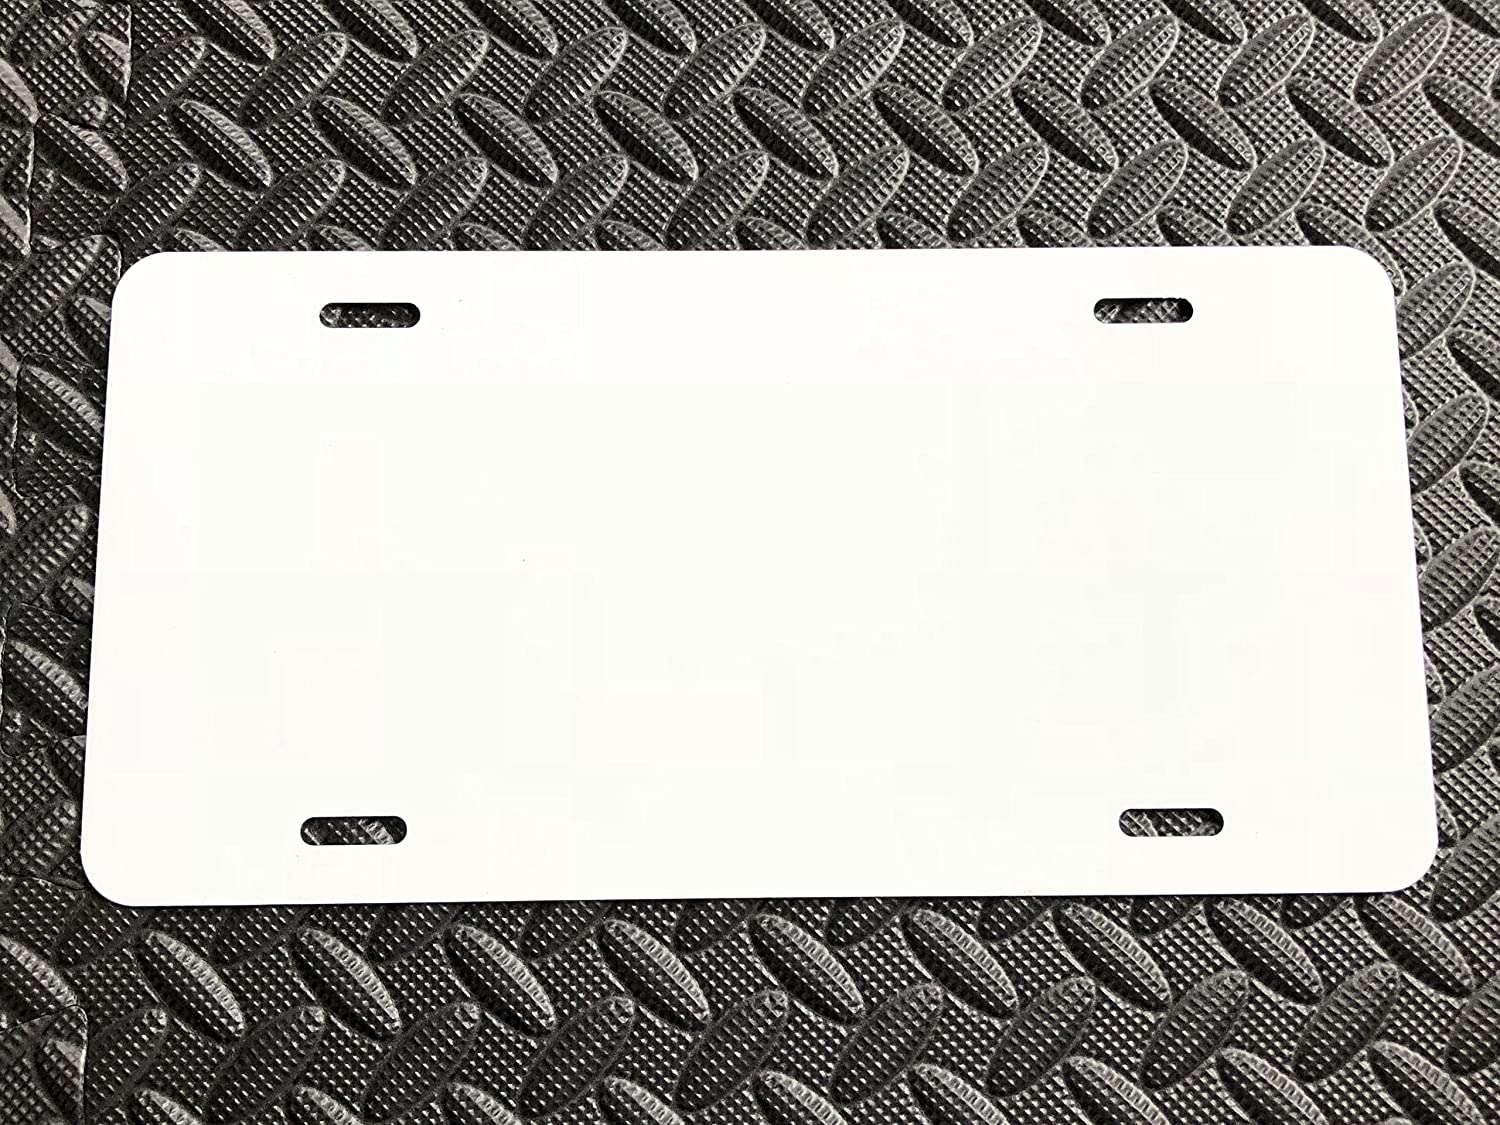 MADE IN USA Aluminum Blank License Plate LICENSEPLATETAGS.COM WHITE Laser Cut 12x6 .020 Gauge 0.5mm